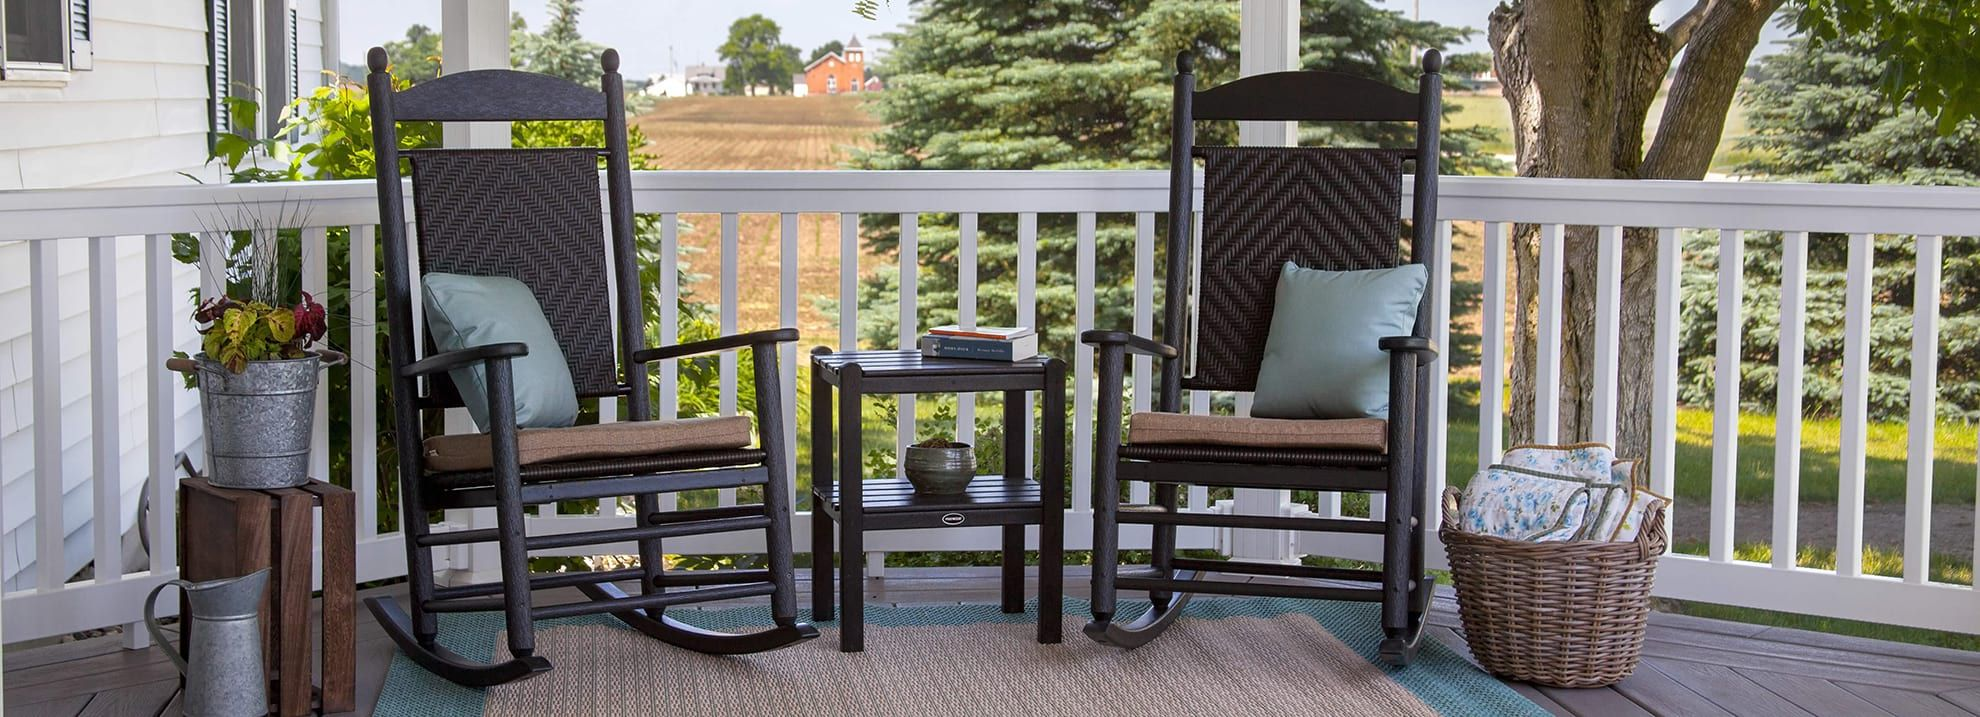 outdoor front porch furniture | porch table, chairs, porch